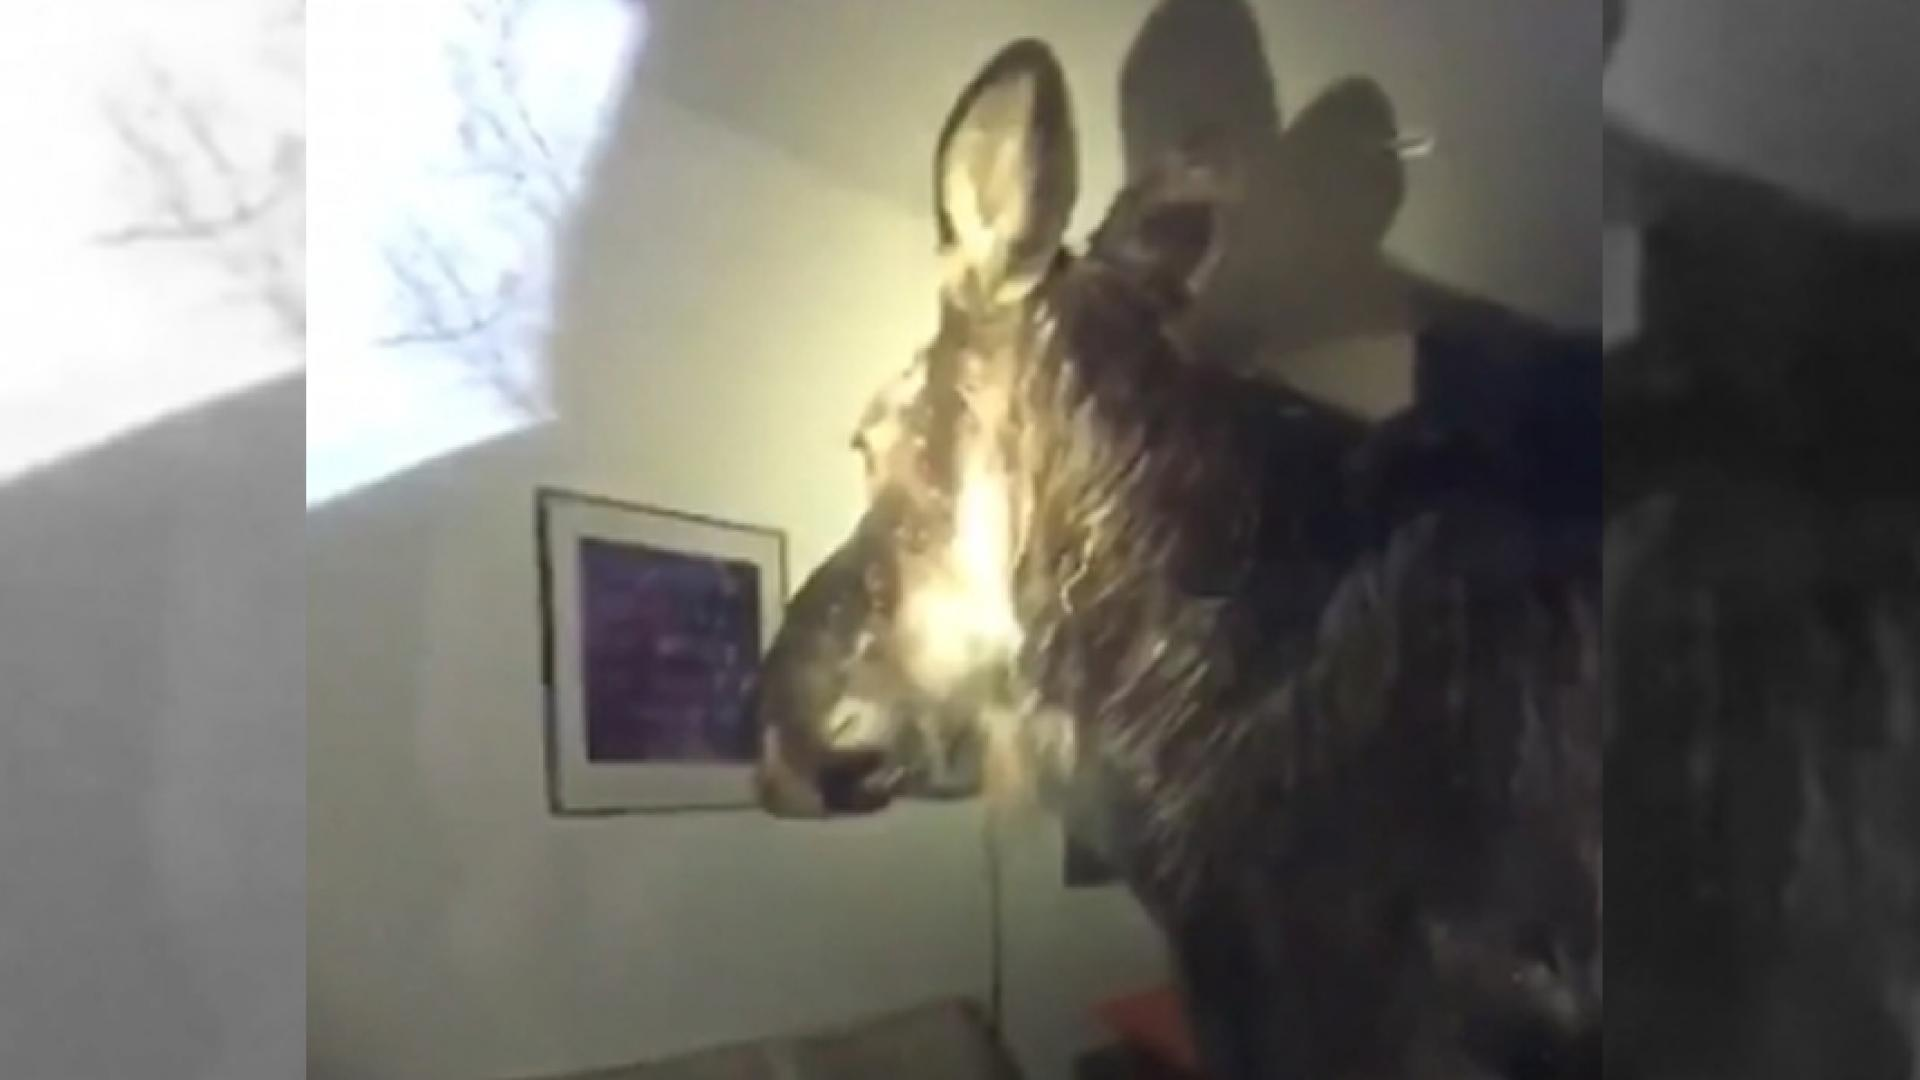 Moose Crashes Through Window, Lands in Couple's Basement